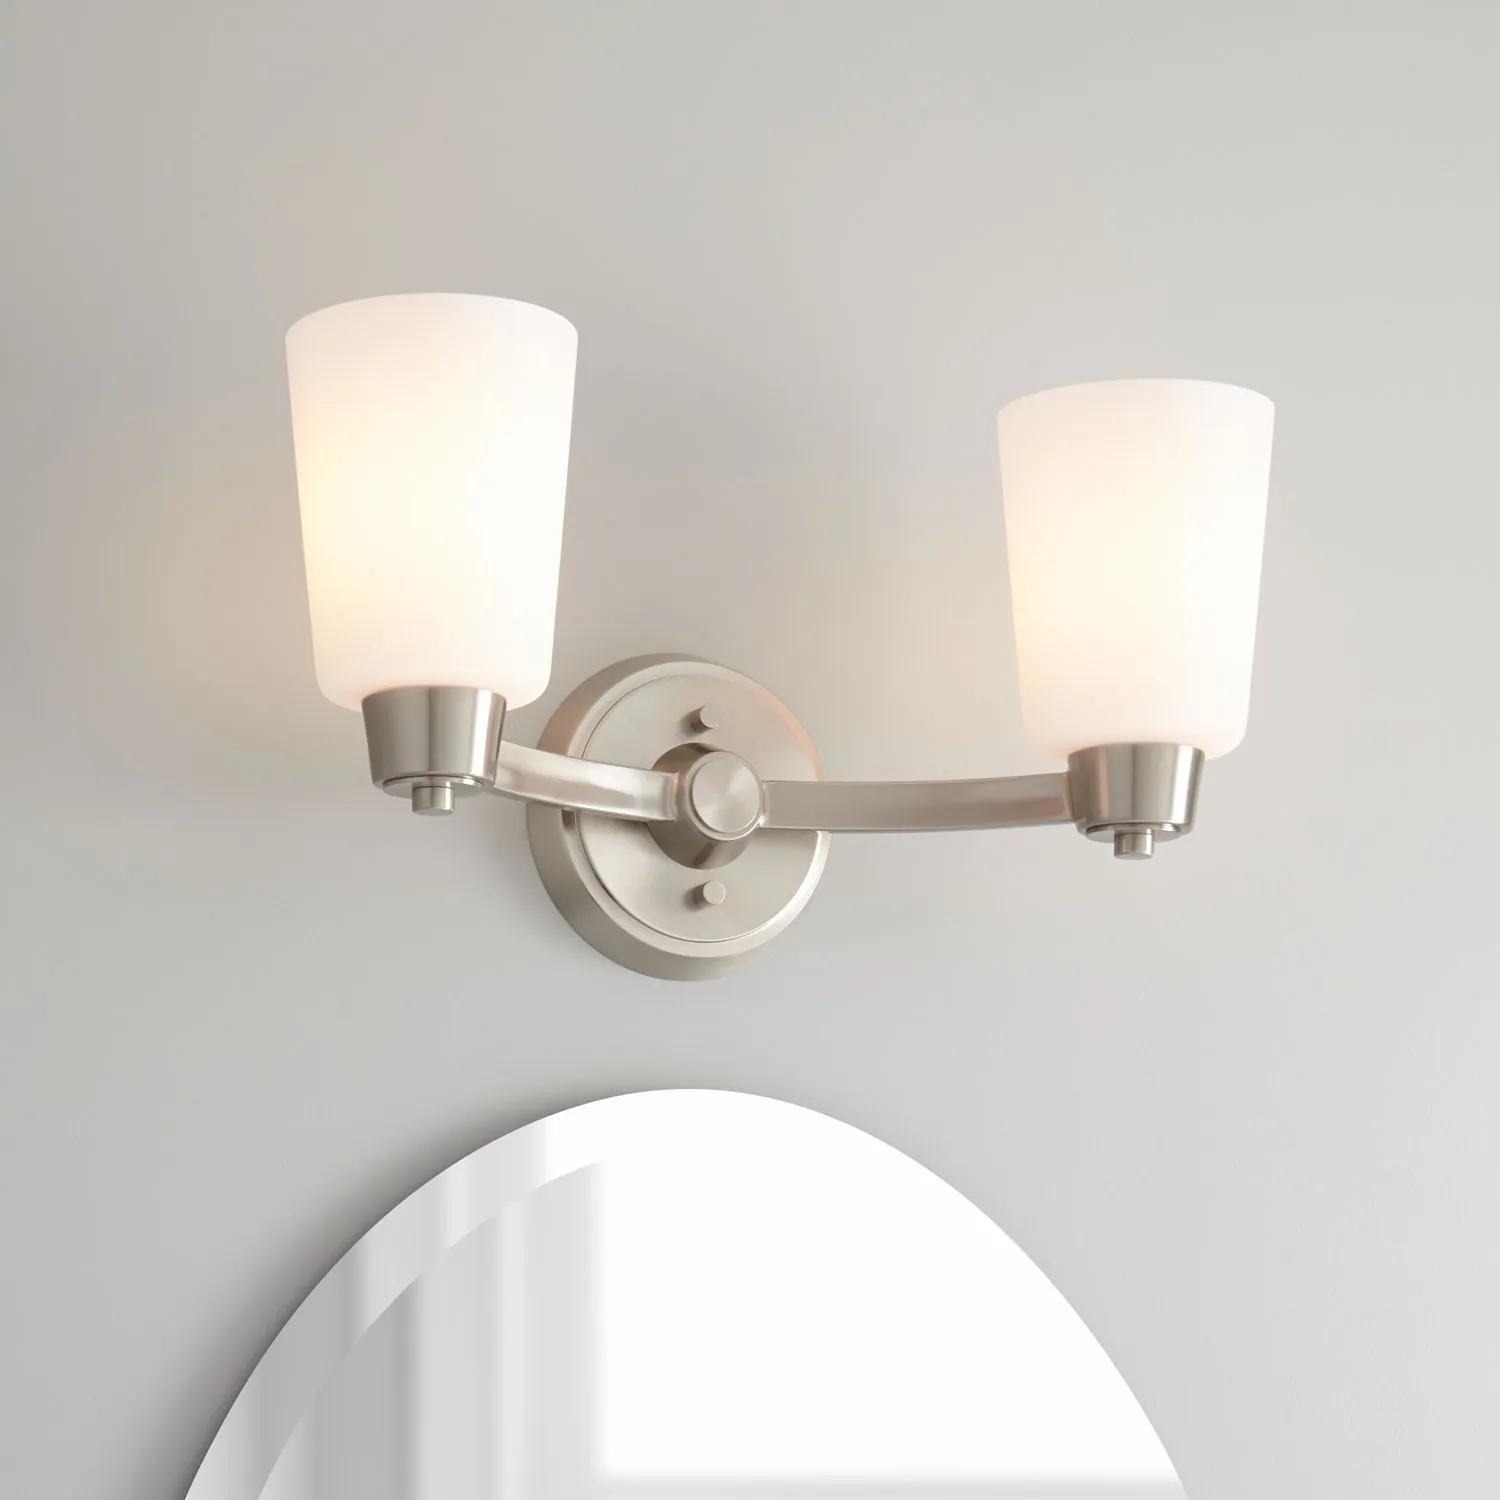 Windsor Gate 2 Light Vanity Light Frosted Glass Bathroom Vanity Lighting Lighting